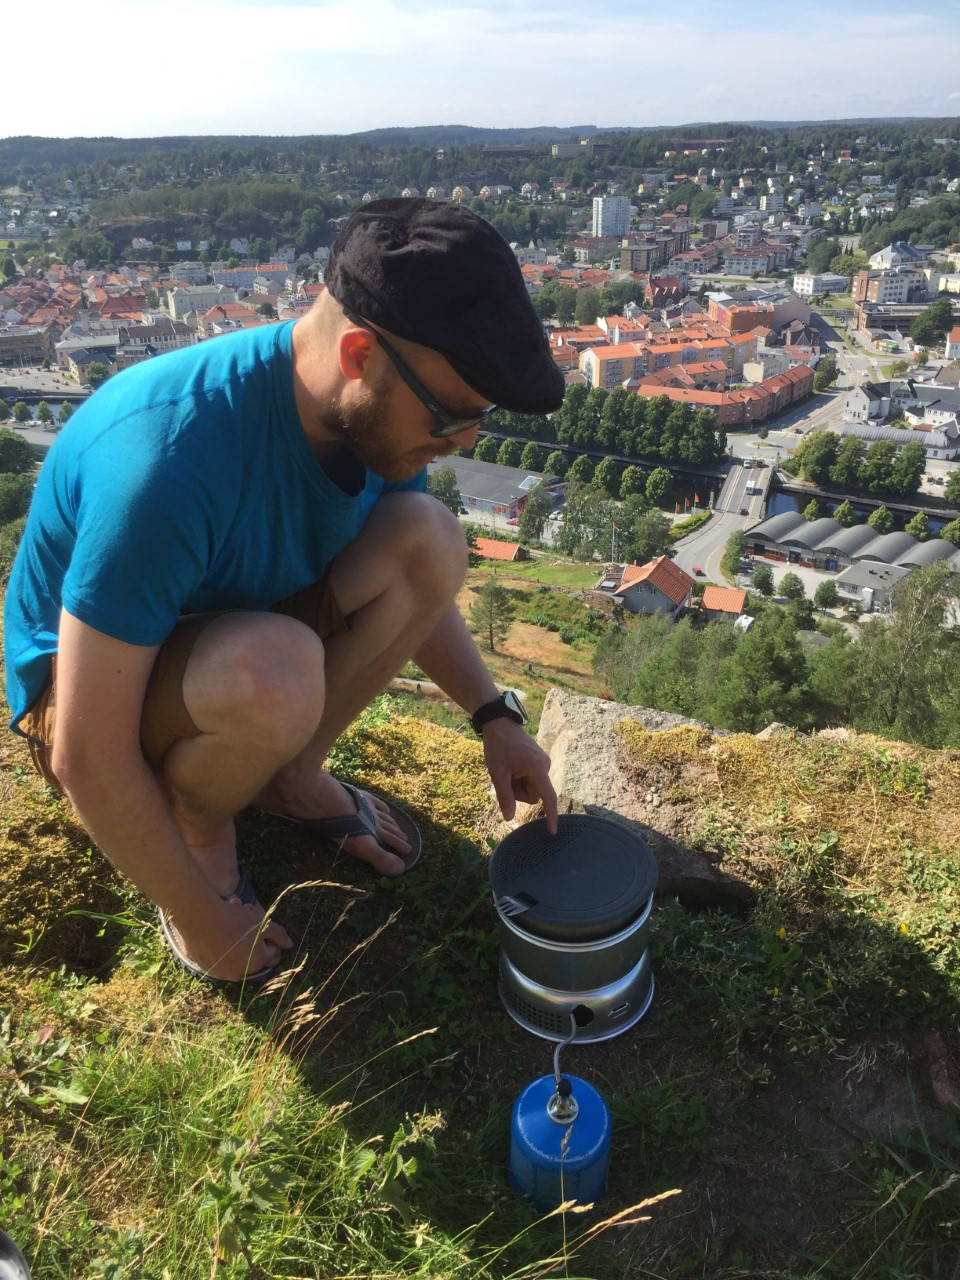 A man using a portable cooker on top of a hill in Norway overlooking a city.